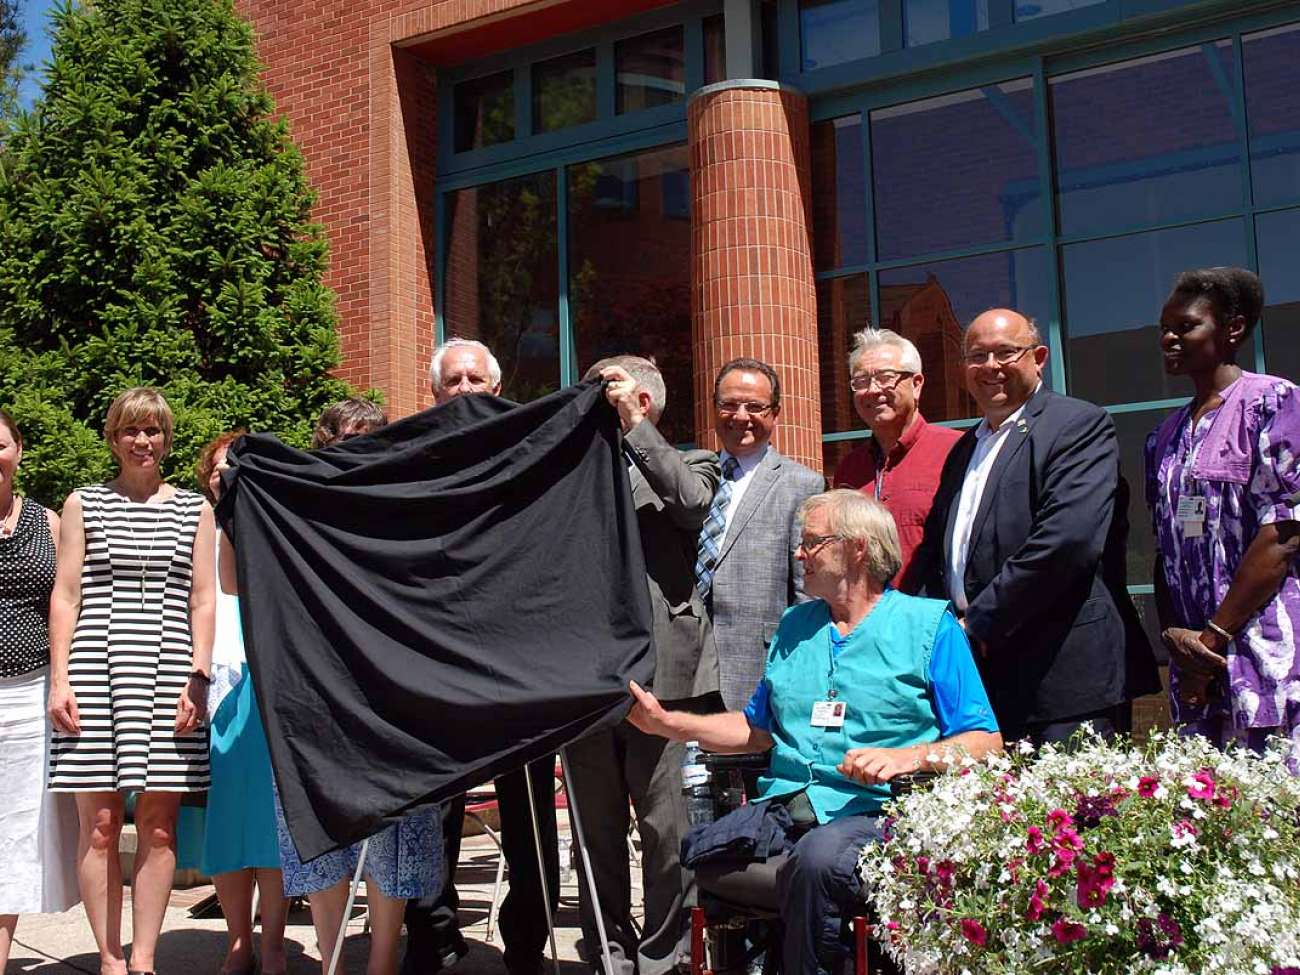 Unveiling a plaque to commemorate the century of care